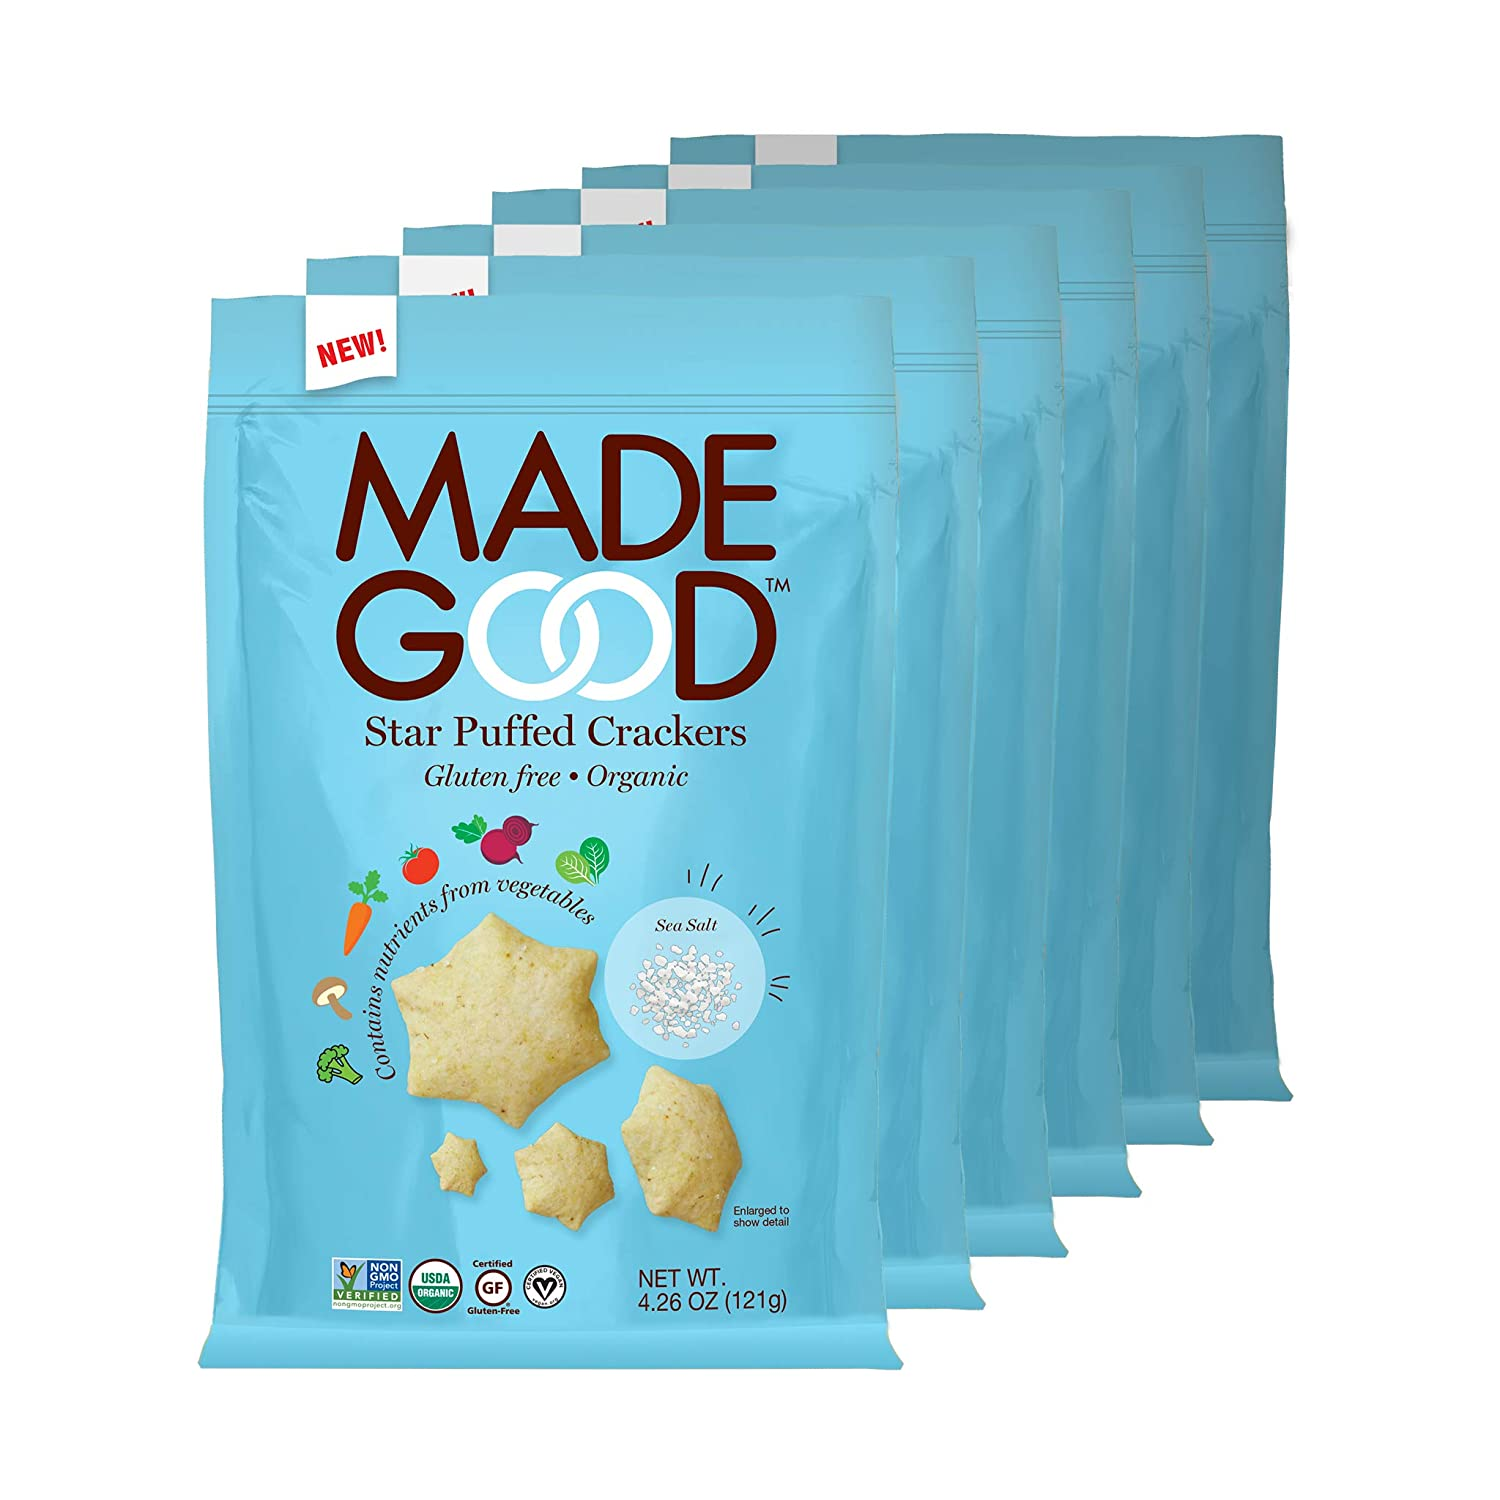 MadeGood Sea Salt Star Puffed Crackers, Gluten Free and USDA Organic 6 Bags (4.26 oz Each); Contain Nutrients of One Full Serving of Vegetables, Nut and Allergen Free Snacks